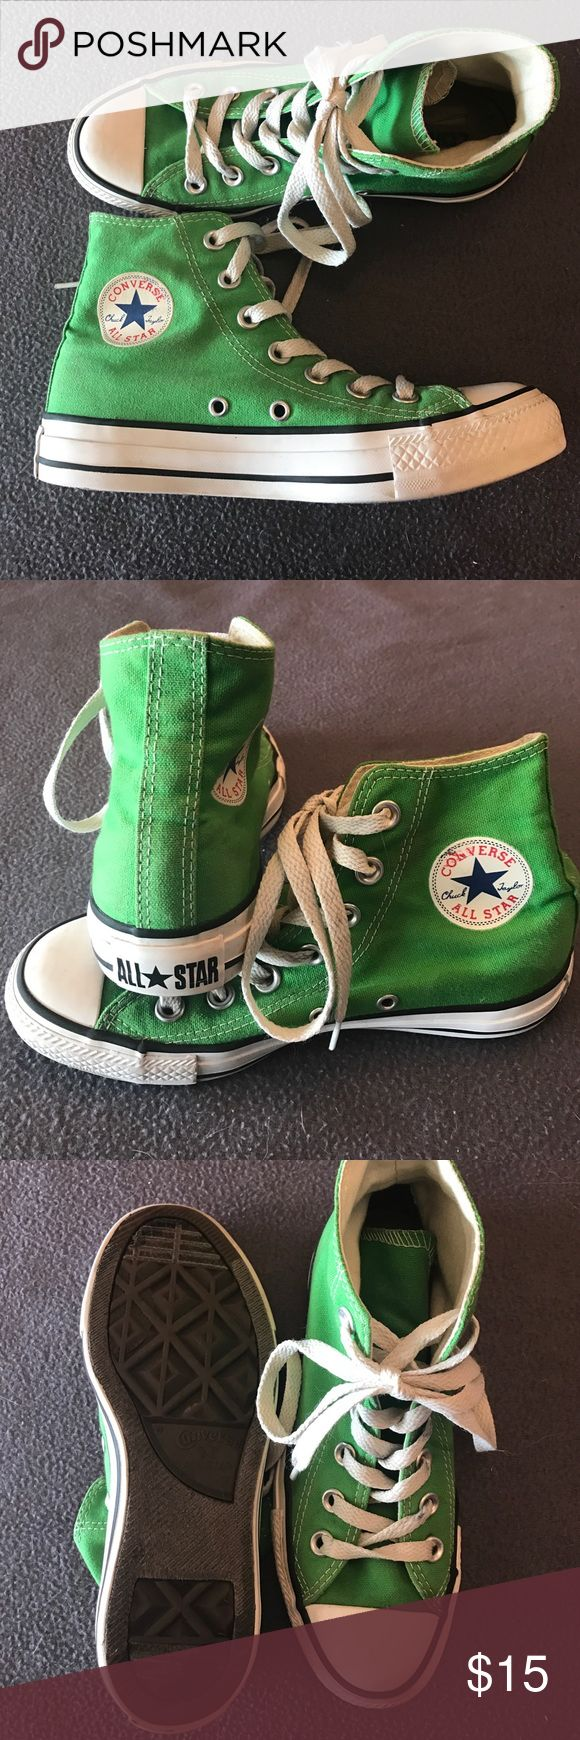 High top green converse High top green converse size 3 Converse Shoes Sneakers